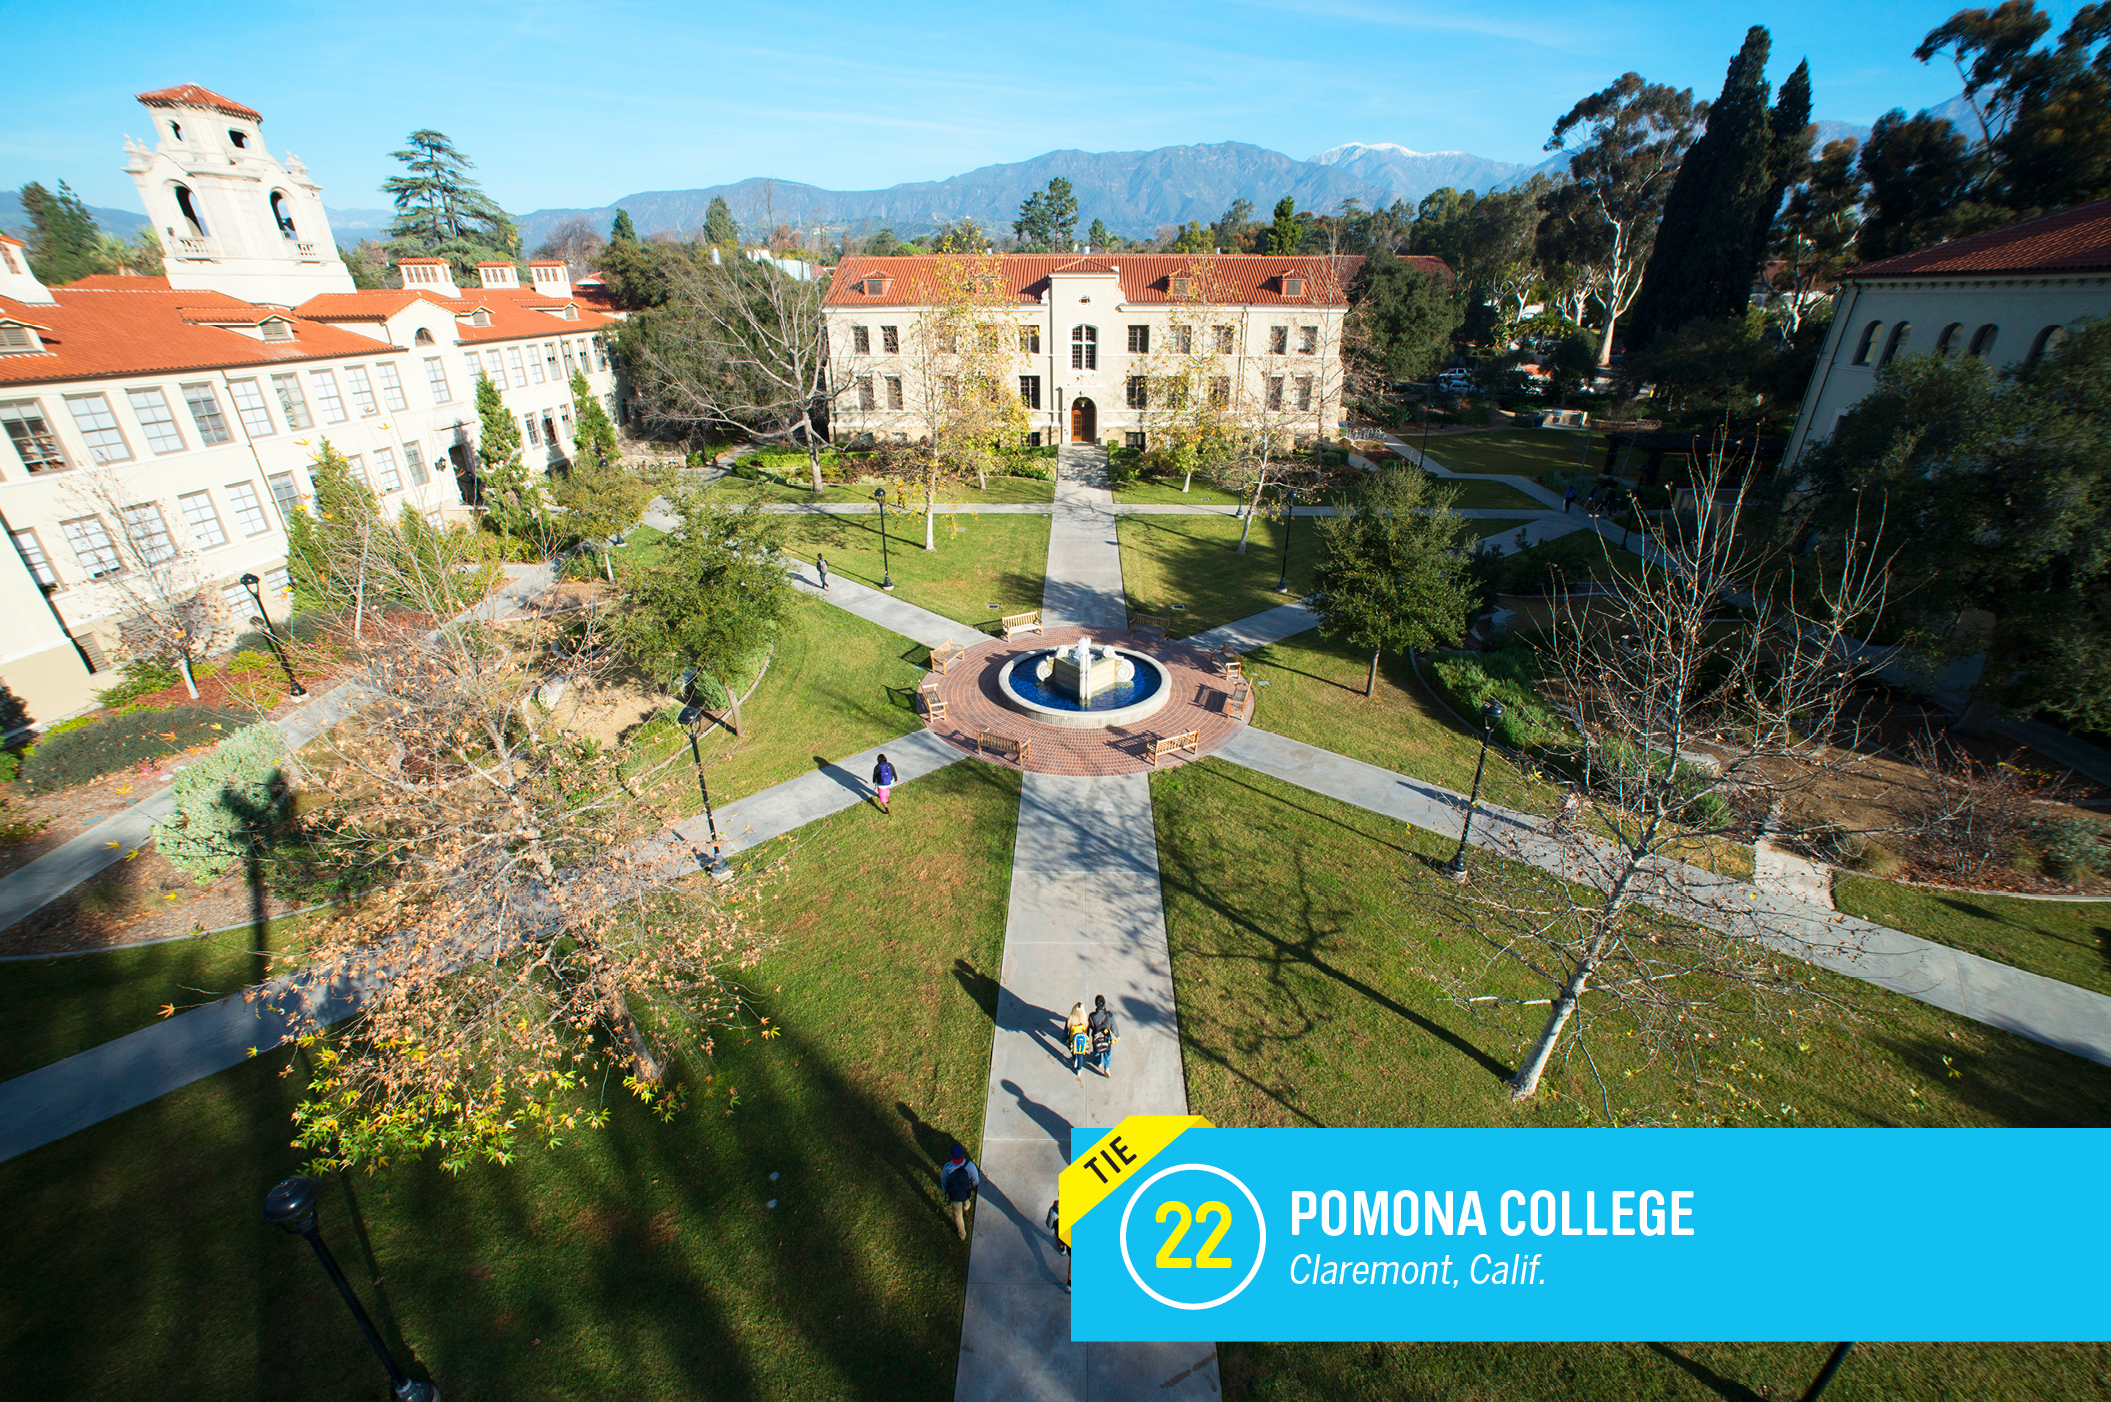 """<a href=""""https://money.com/best-colleges/profile/pomona-college/"""" target=""""_blank"""">Pomona</a> is among the handful of schools vowing to meet student's full demonstrated need with aid, so more than 70% of grads have no student debt. With 1,600 undergraduates, Pomona features close student-faculty relationships. <a href=""""https://money.com/best-colleges/profile/pomona-college/"""" target=""""_blank"""">FULL PROFILE</a>"""